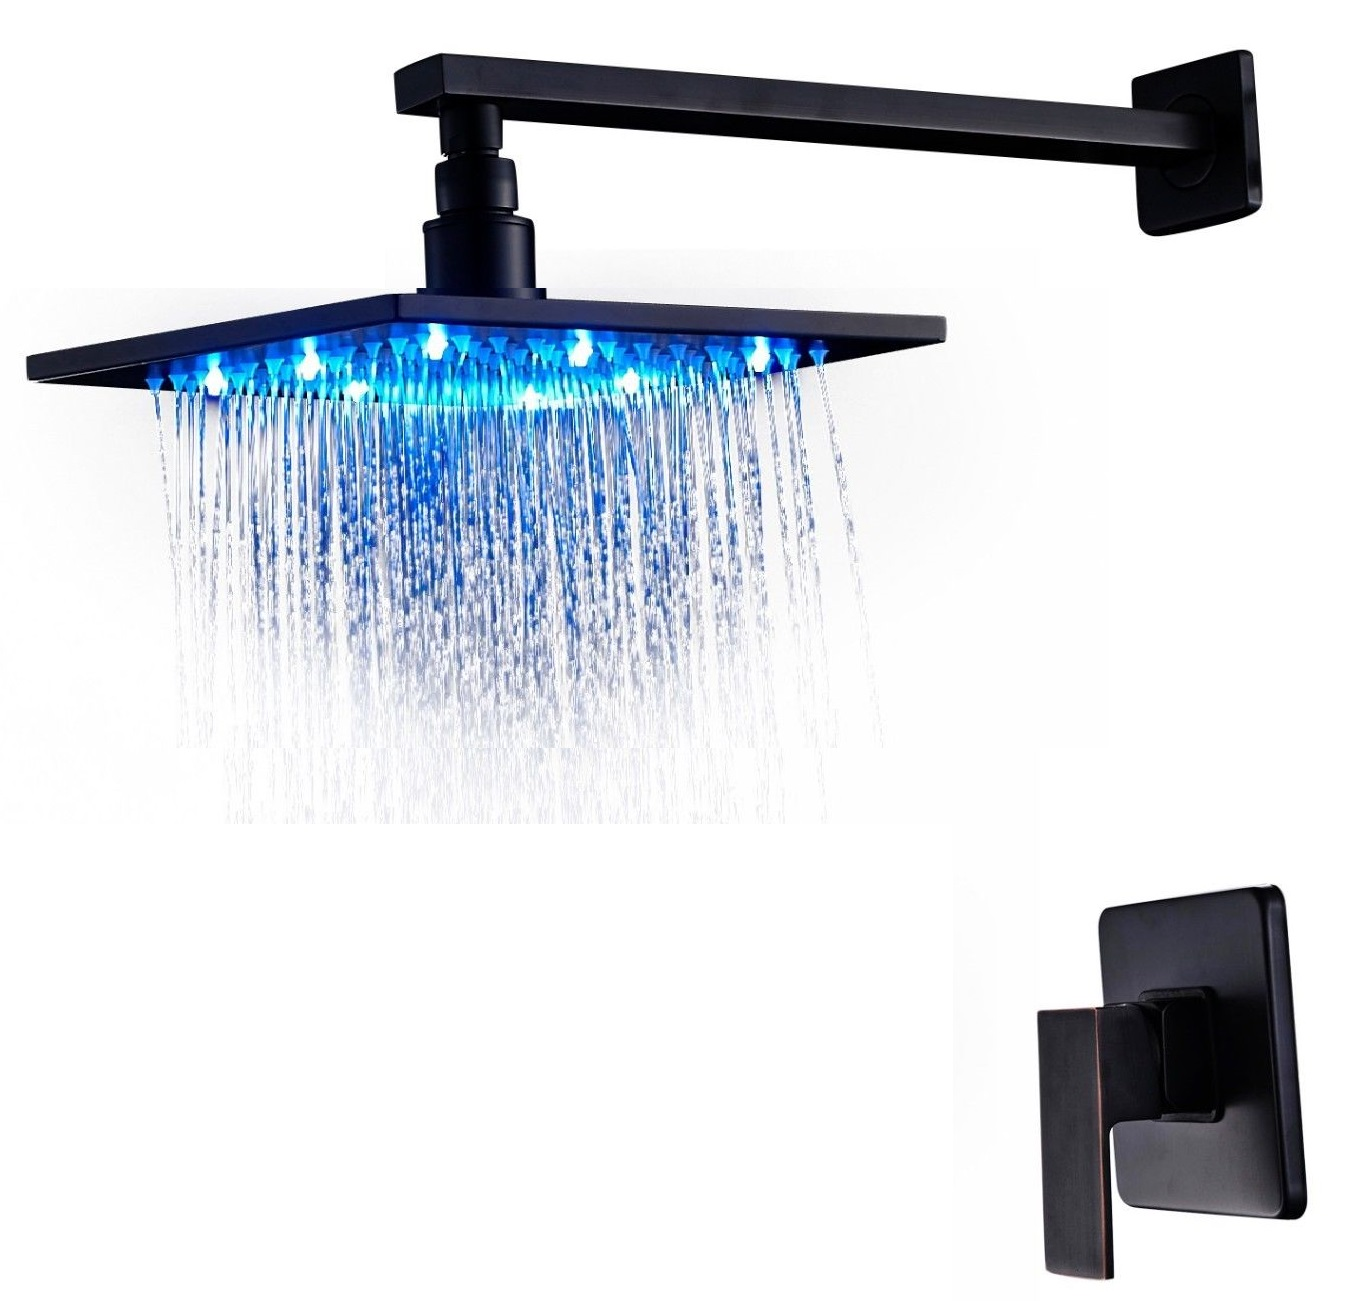 Rivera Dark Oil Rubbed Bronze Led Rain Shower Set Features